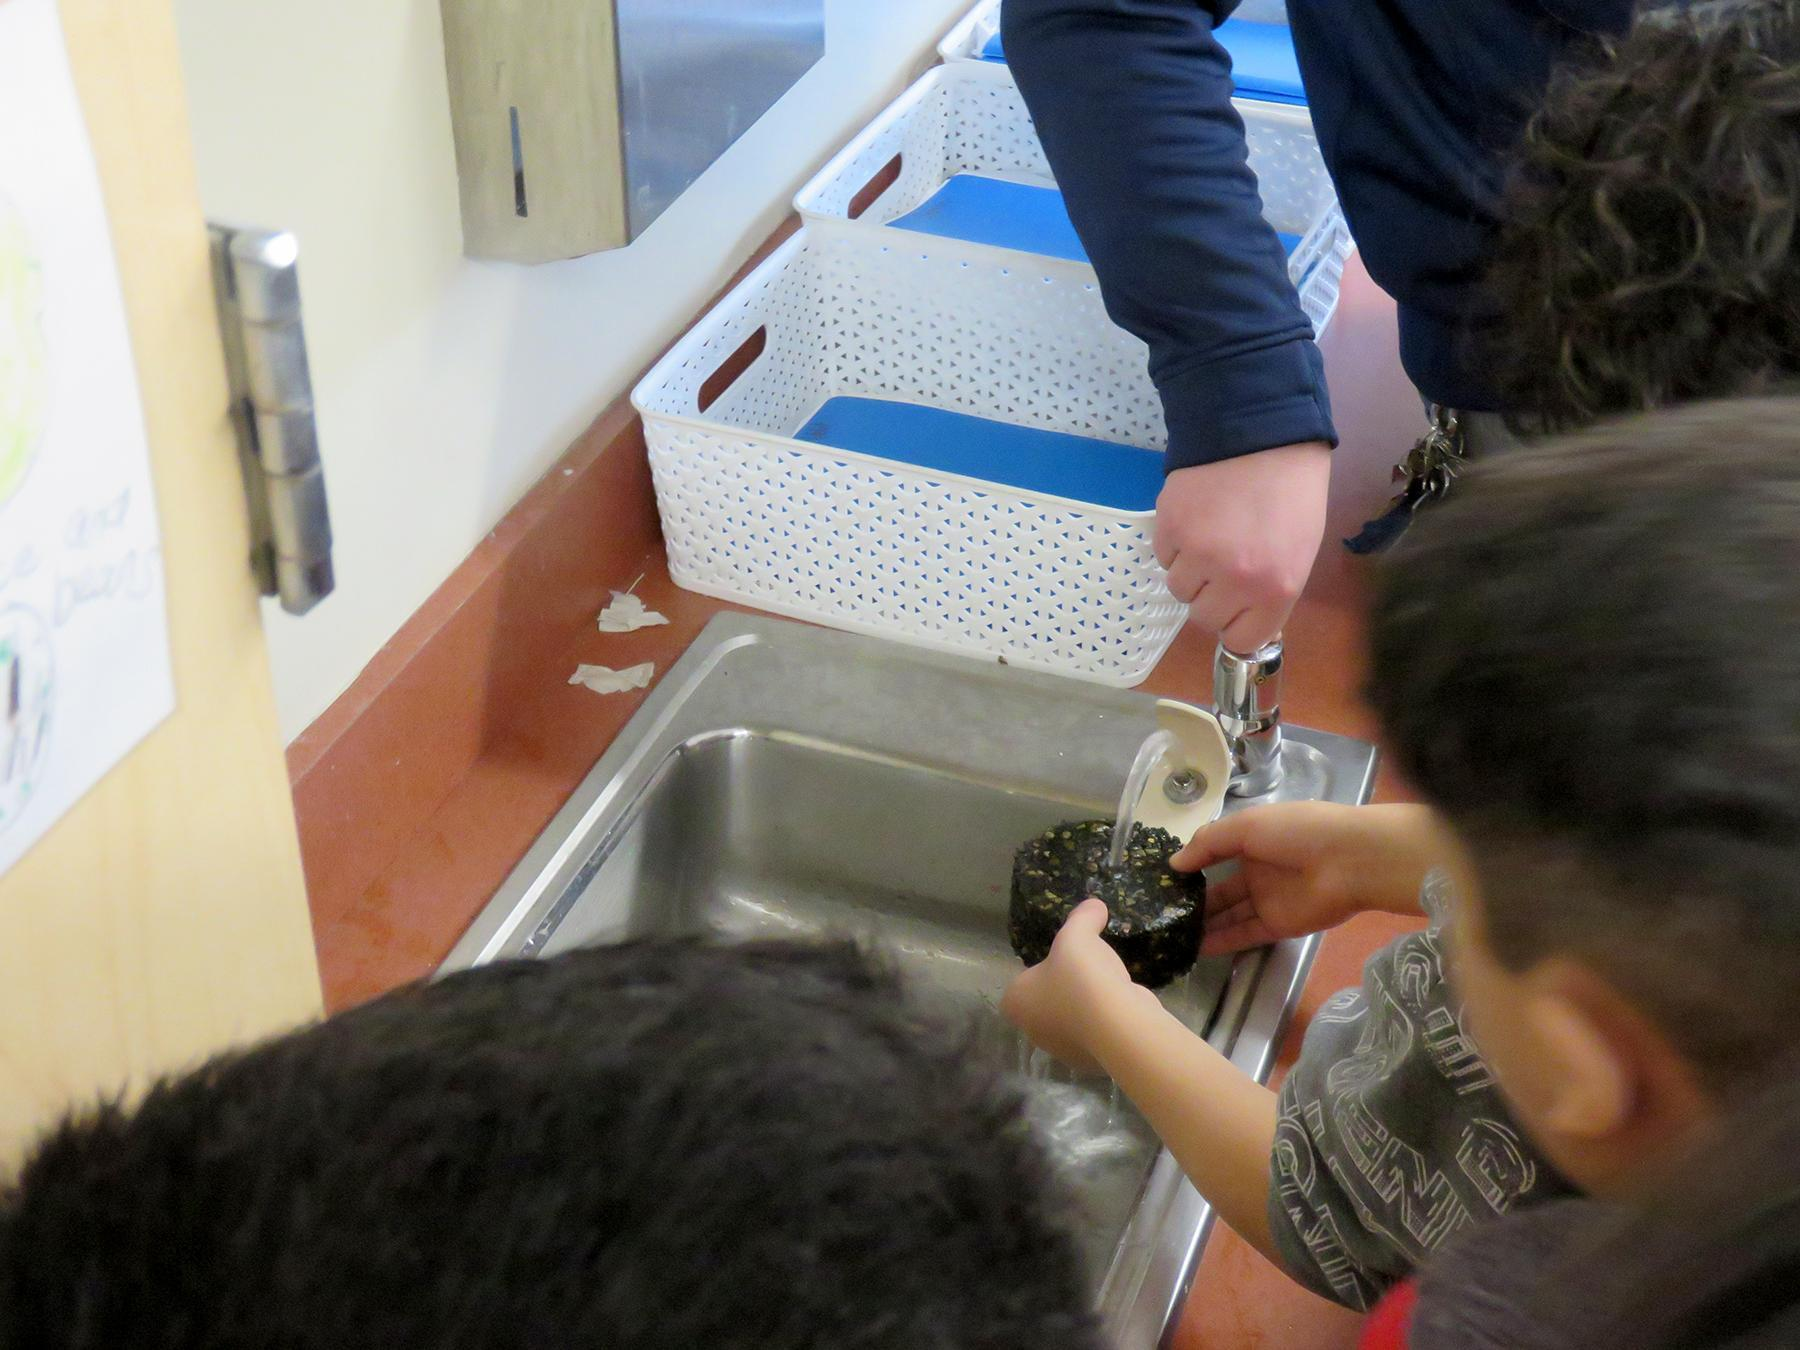 Students test a product under running water